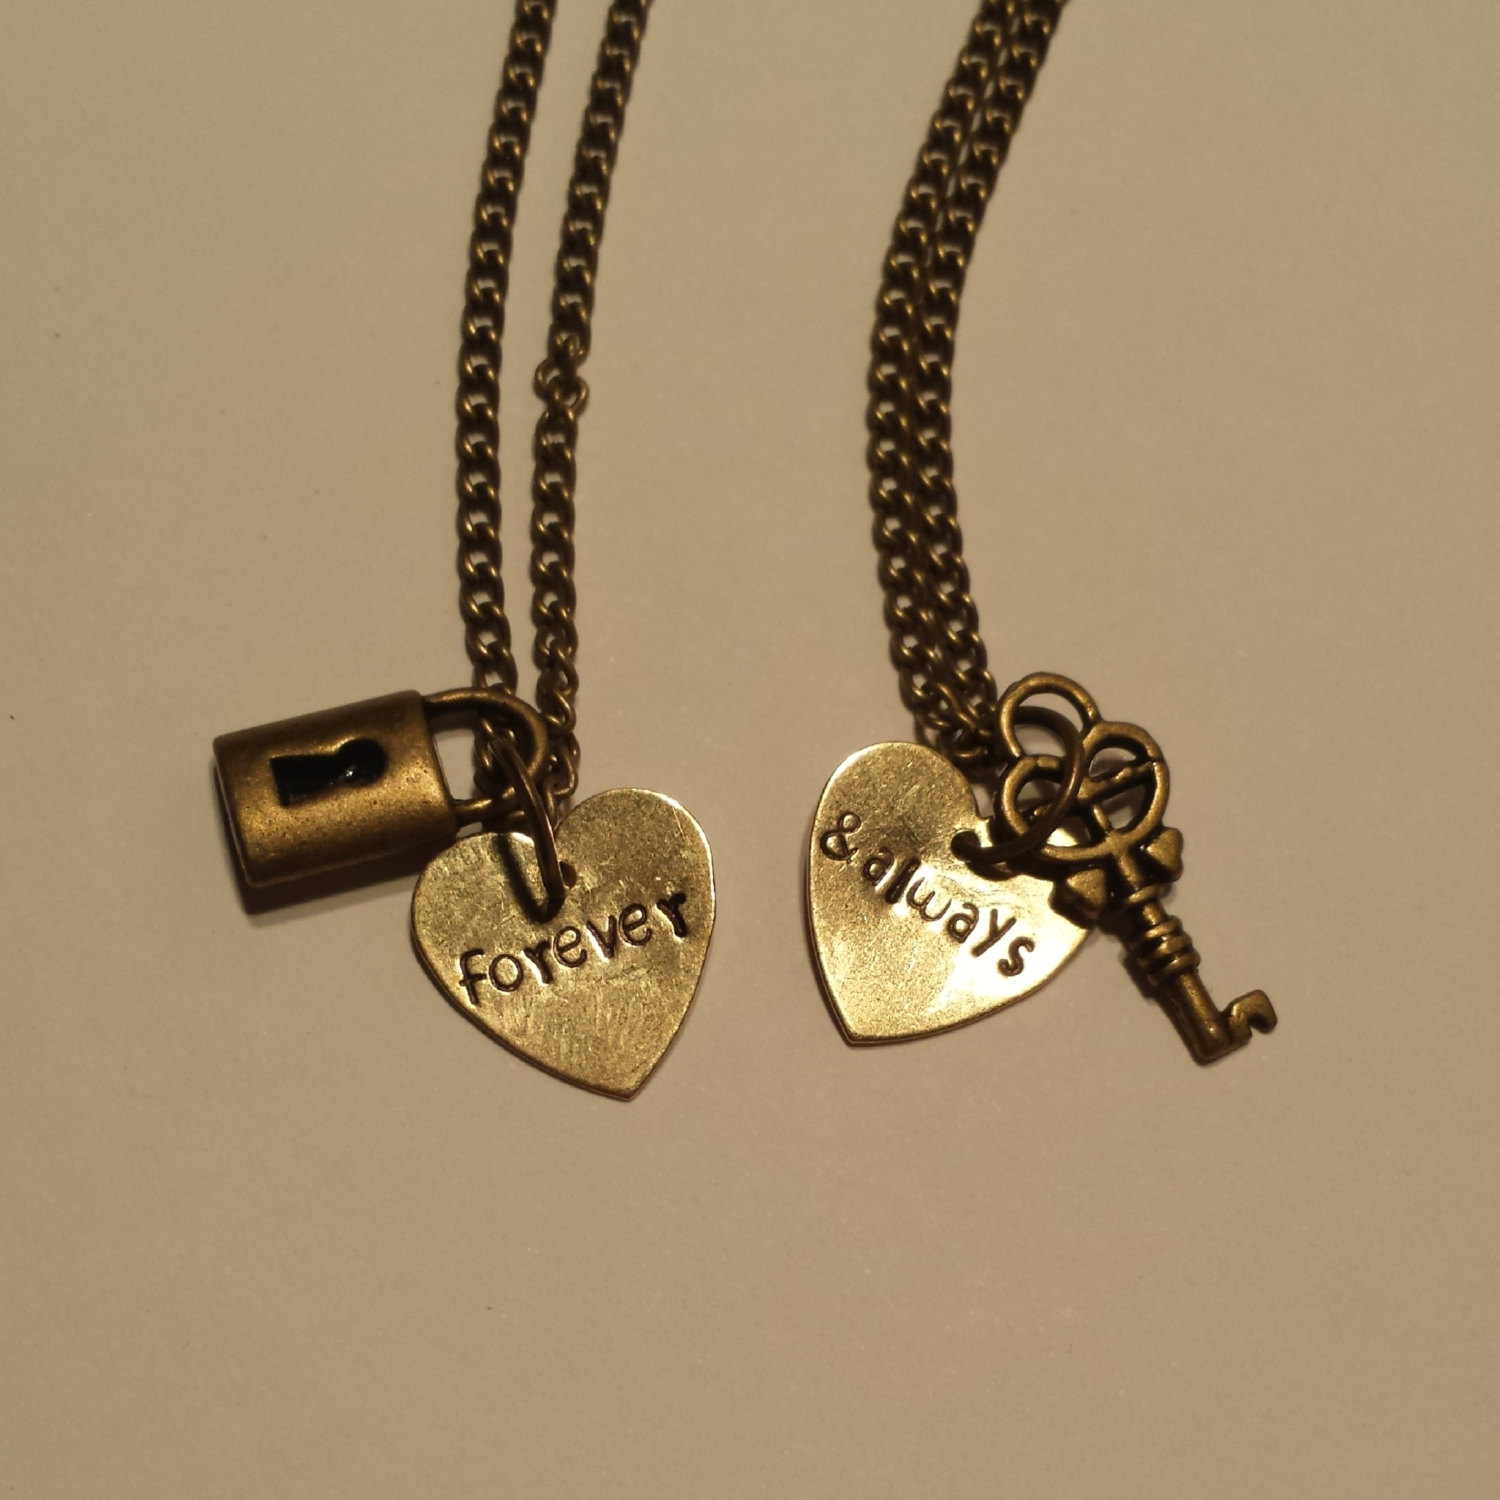 2e4826eee3 ... Couples Necklace Set with Lock and Key Charms - Couples Jewelry - Best  Friend Necklaces -